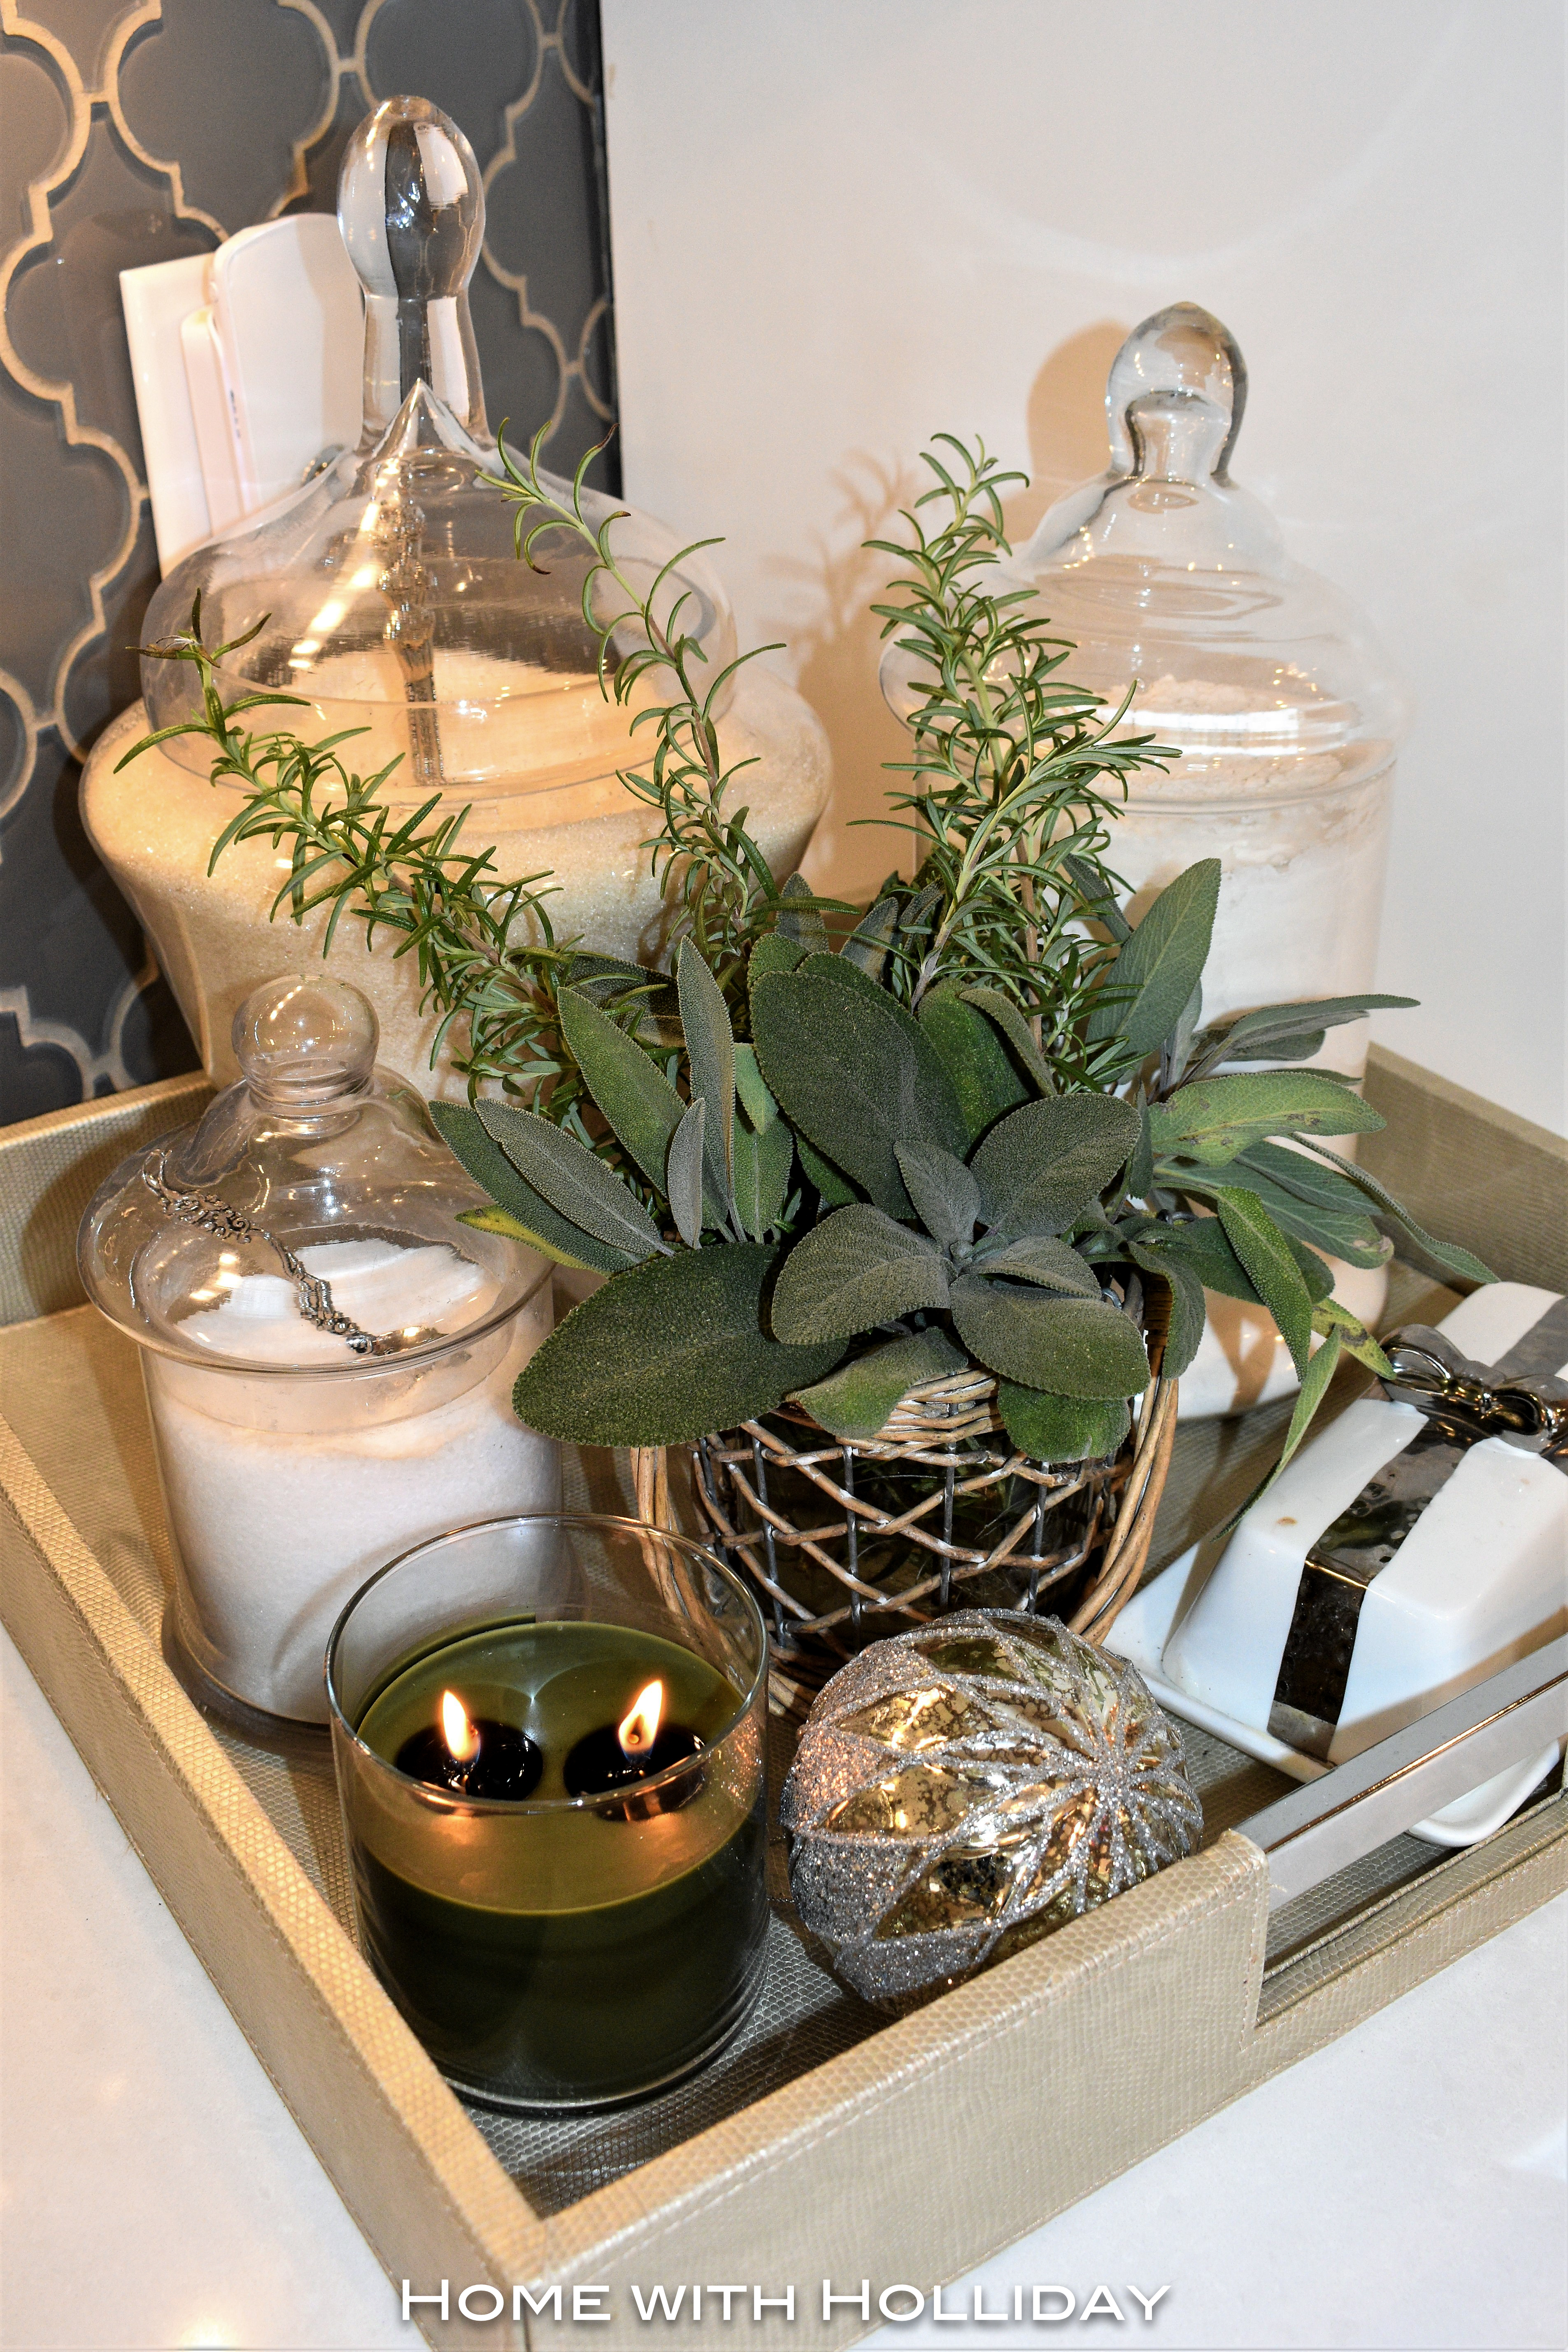 Rustic Winter Christmas Vignette with Apothecary Jars and Fresh Herbs - Home with Holliday